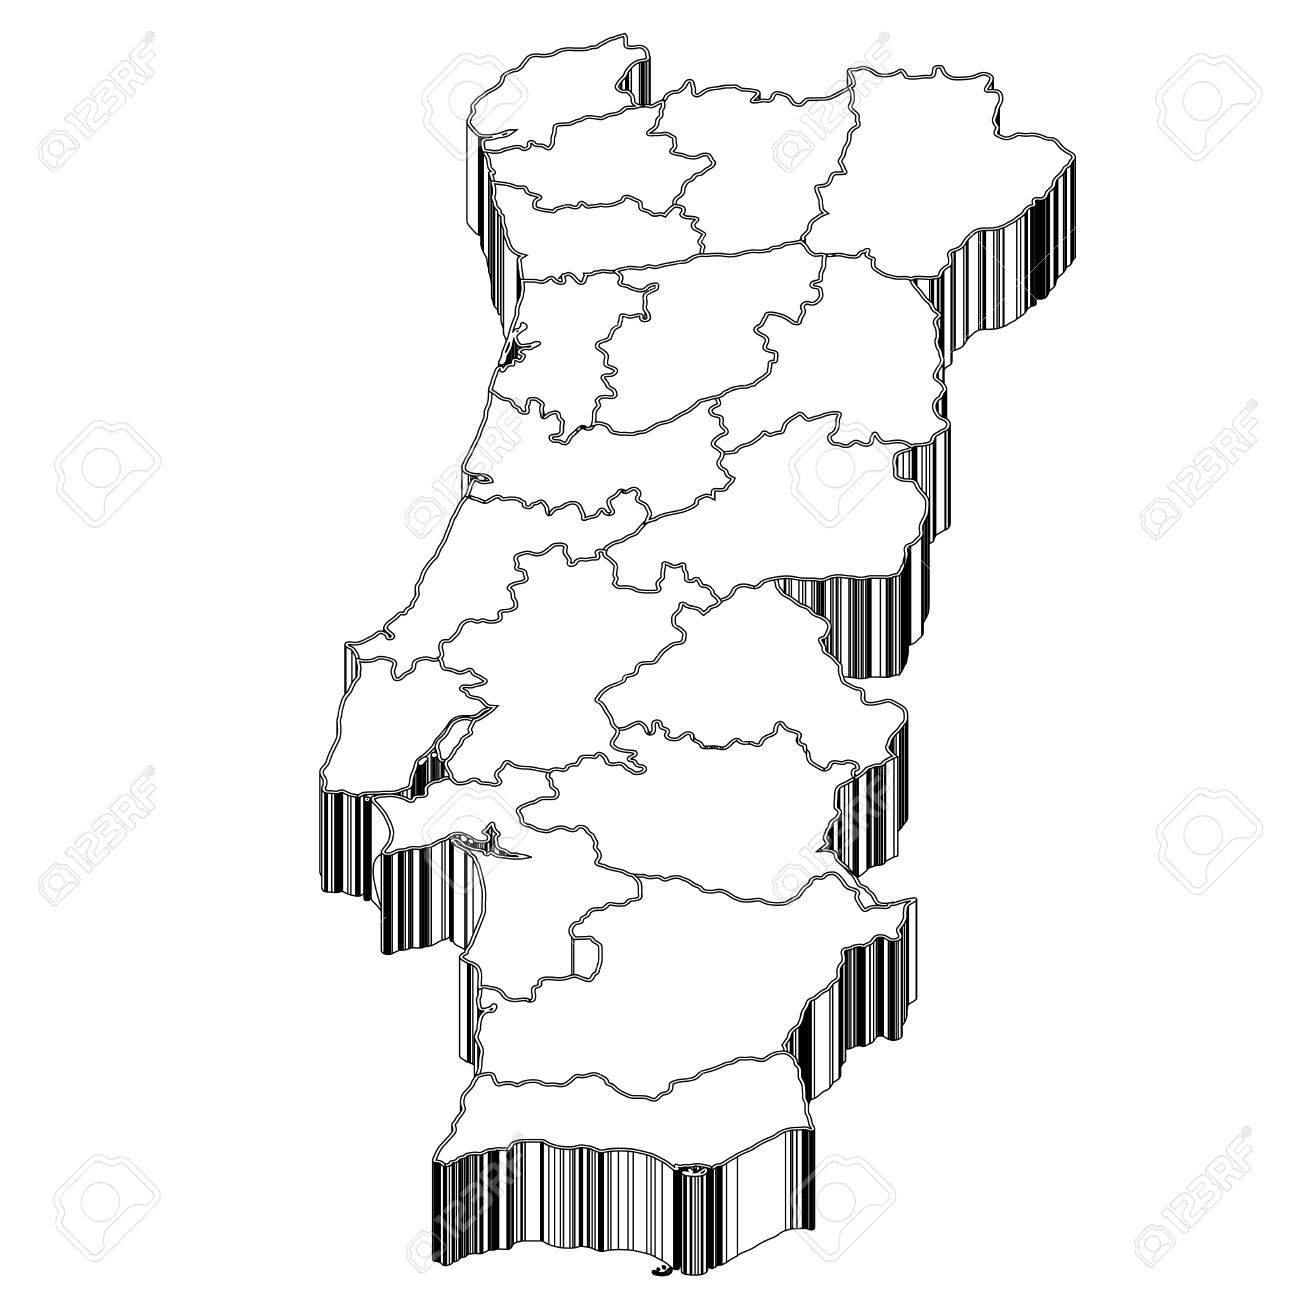 Portugal Portugal Map Royalty Free Cliparts Vectors And Stock - Portugal map black and white